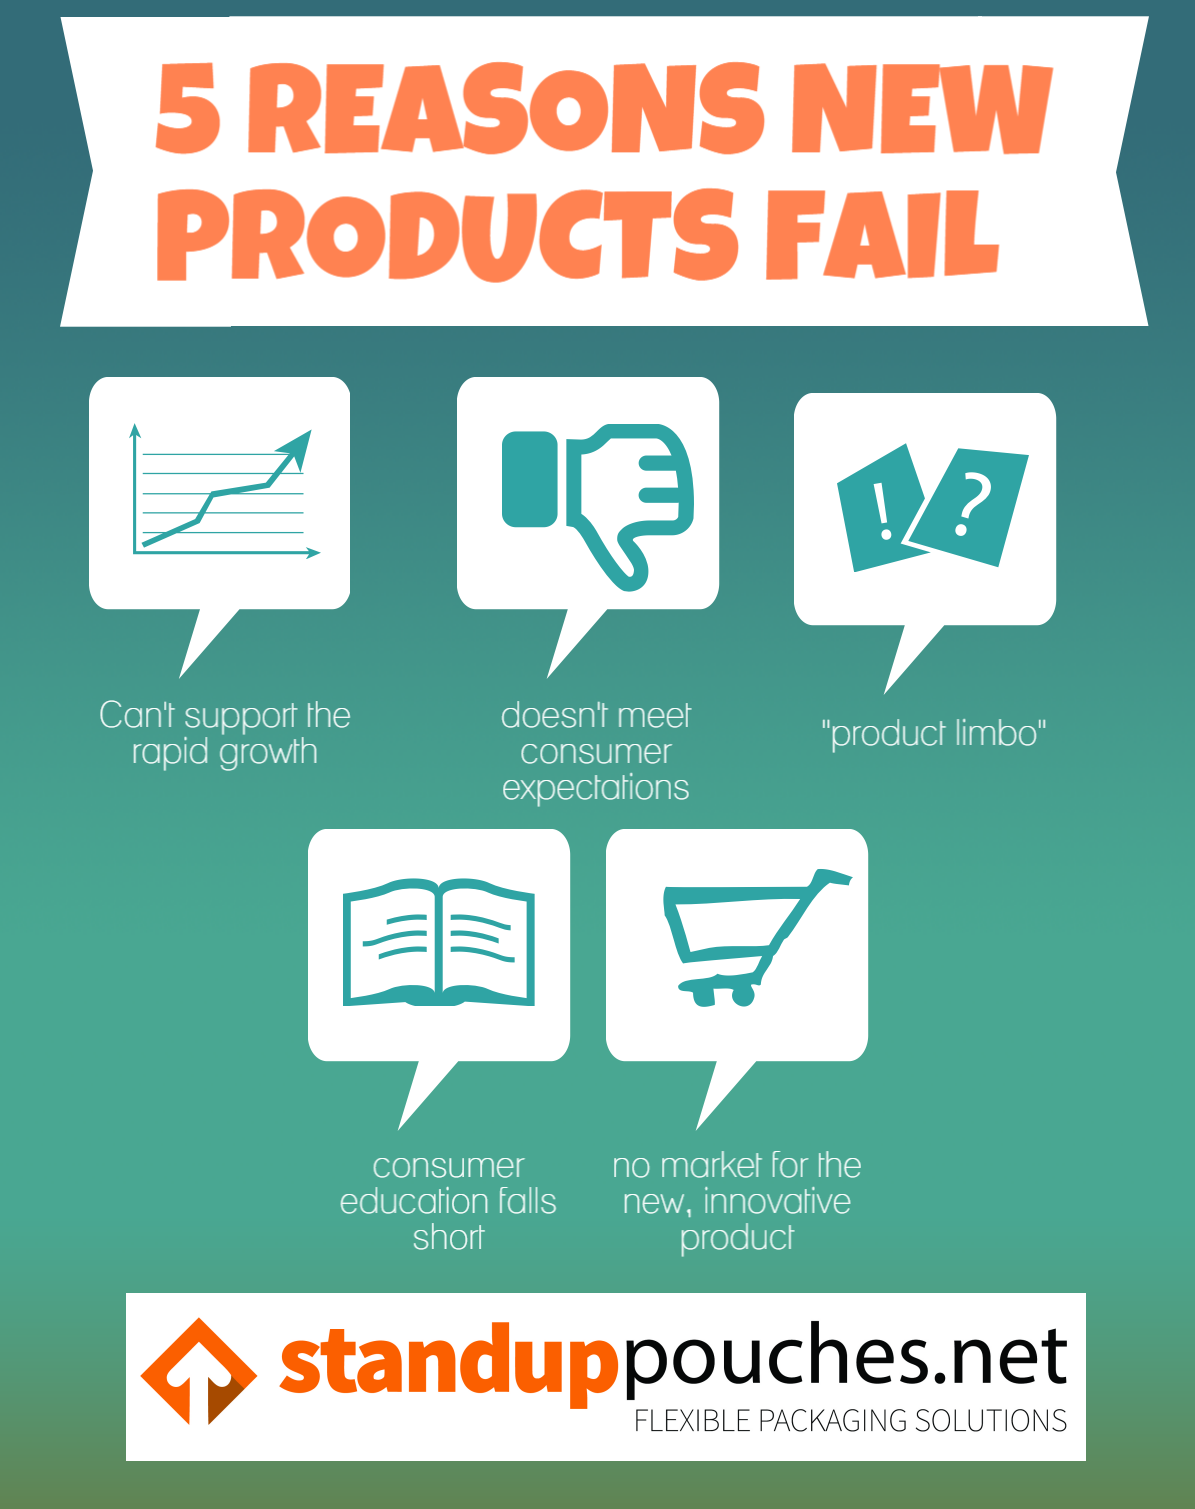 5 Reasons New Products Fail Infographic